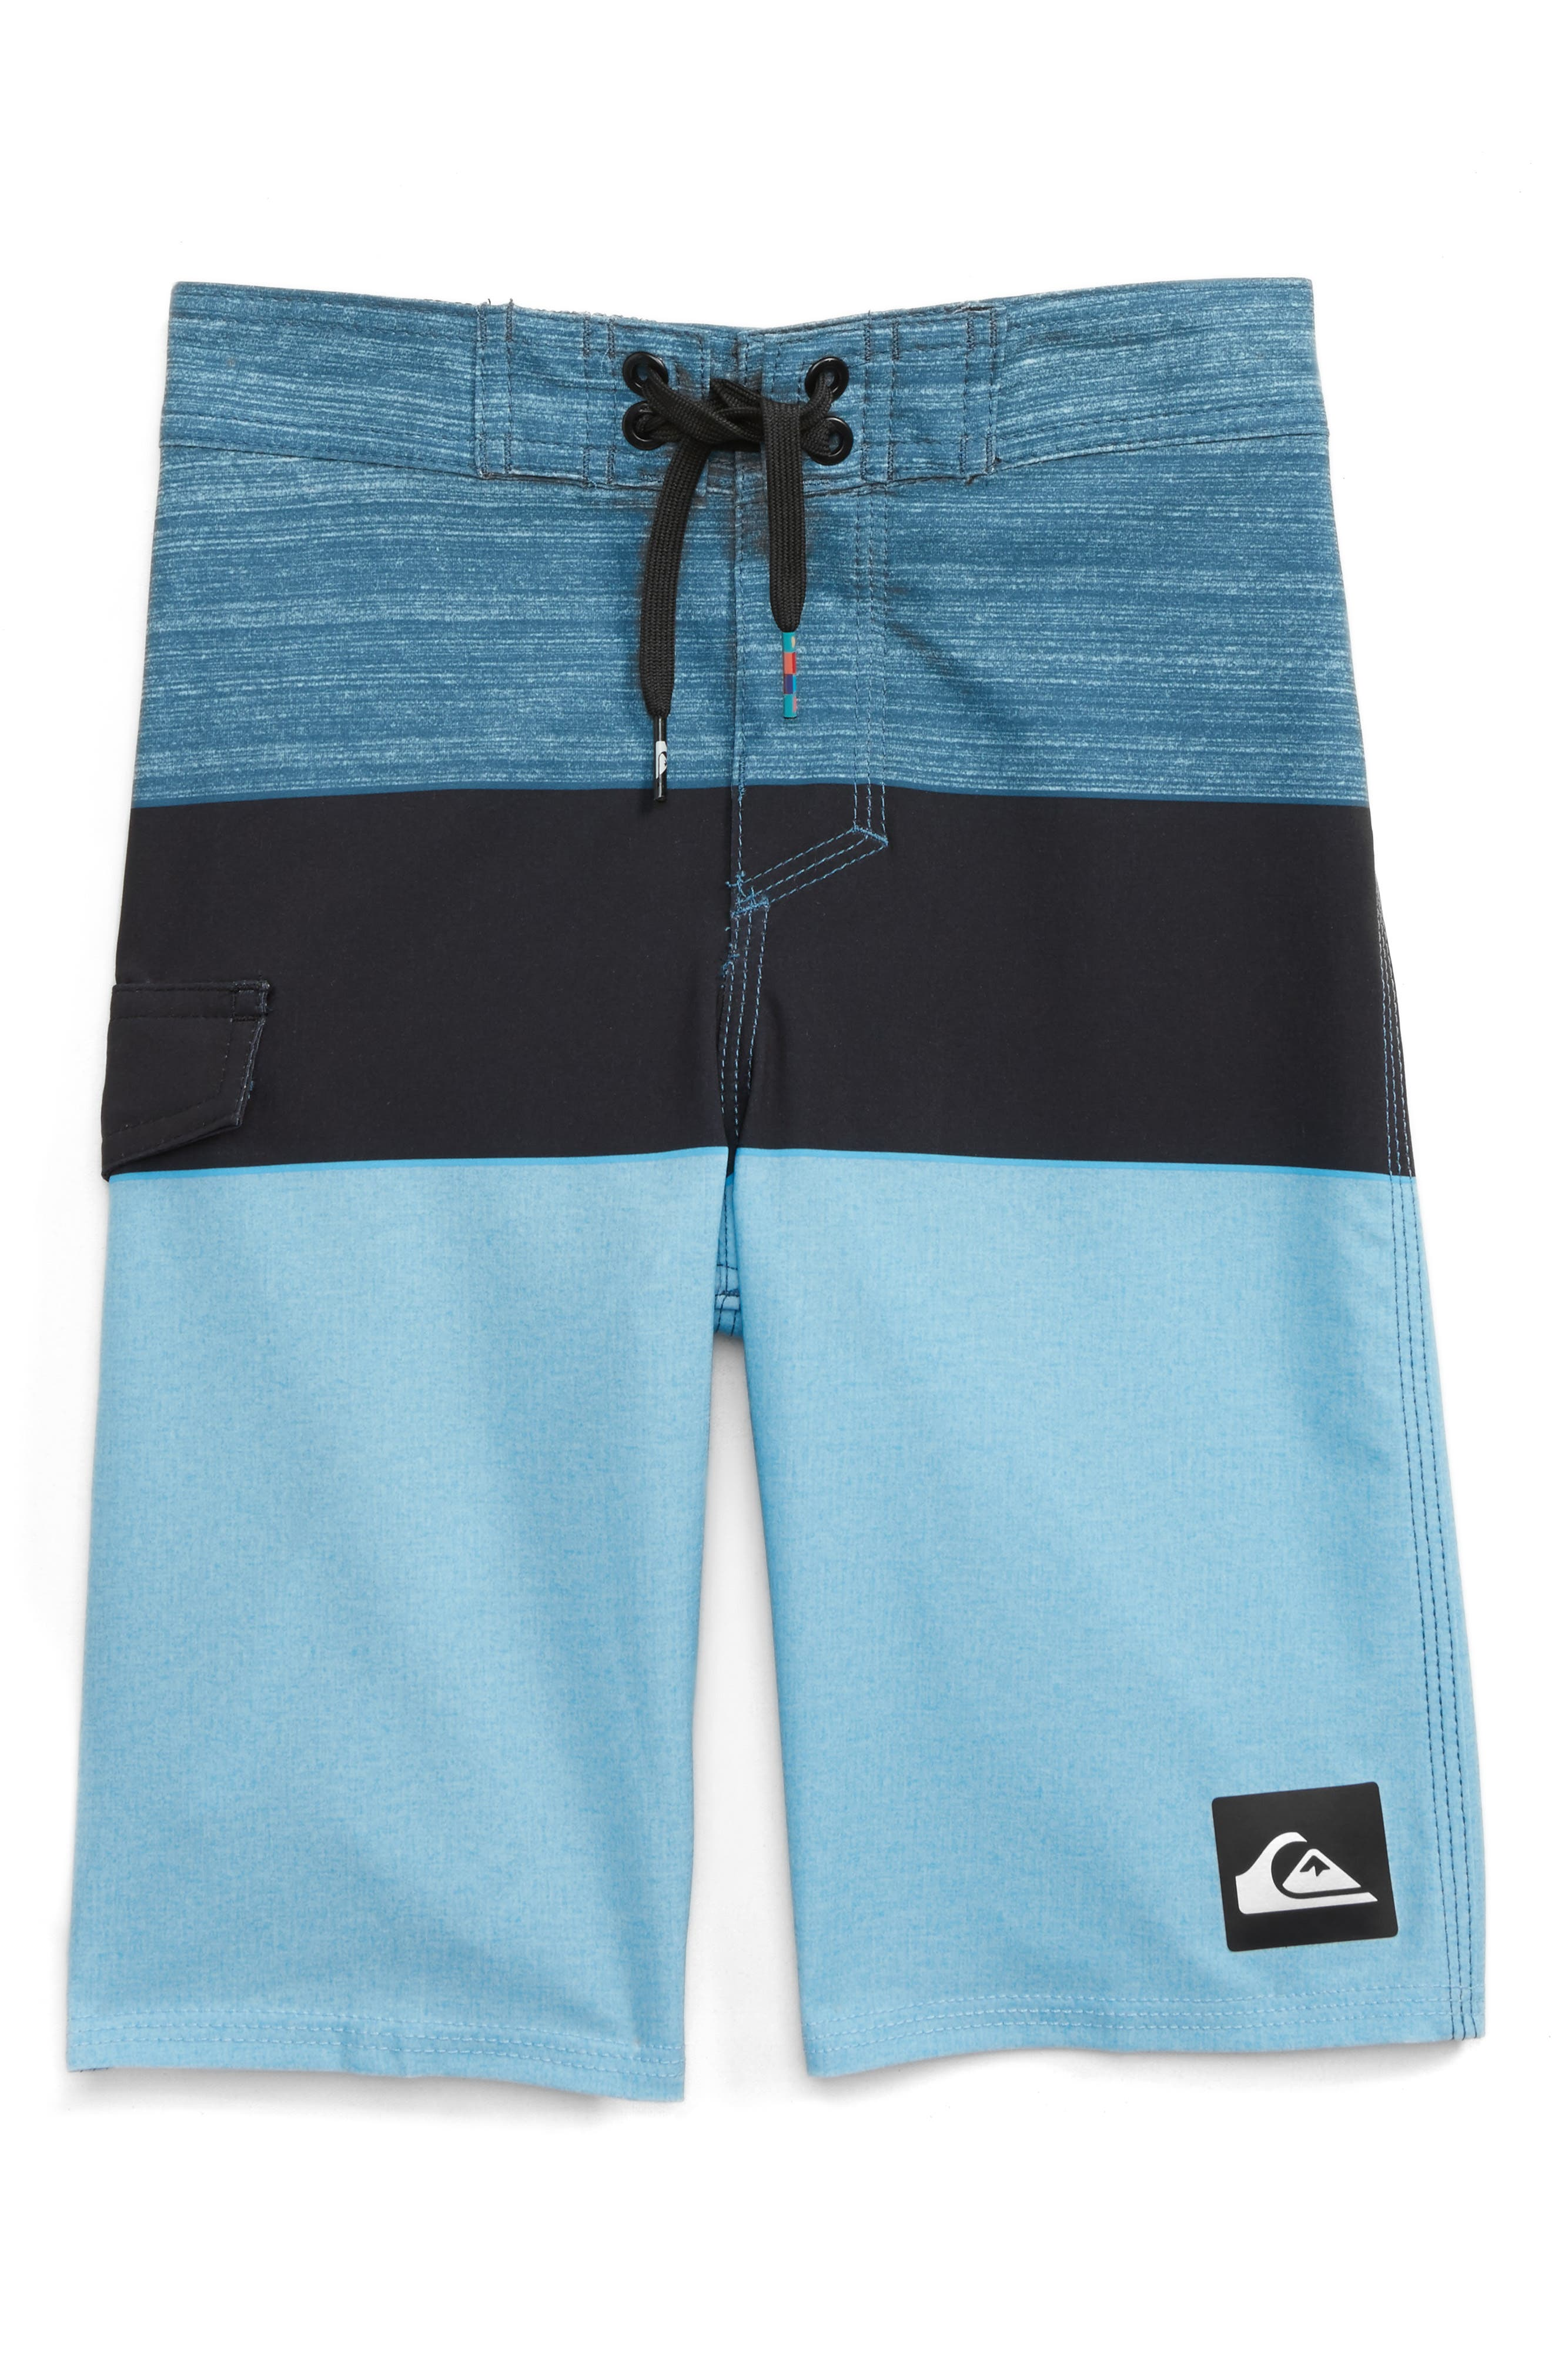 Quiksilver Everyday Volley Shorts (Toddler Boys & Little Boys)